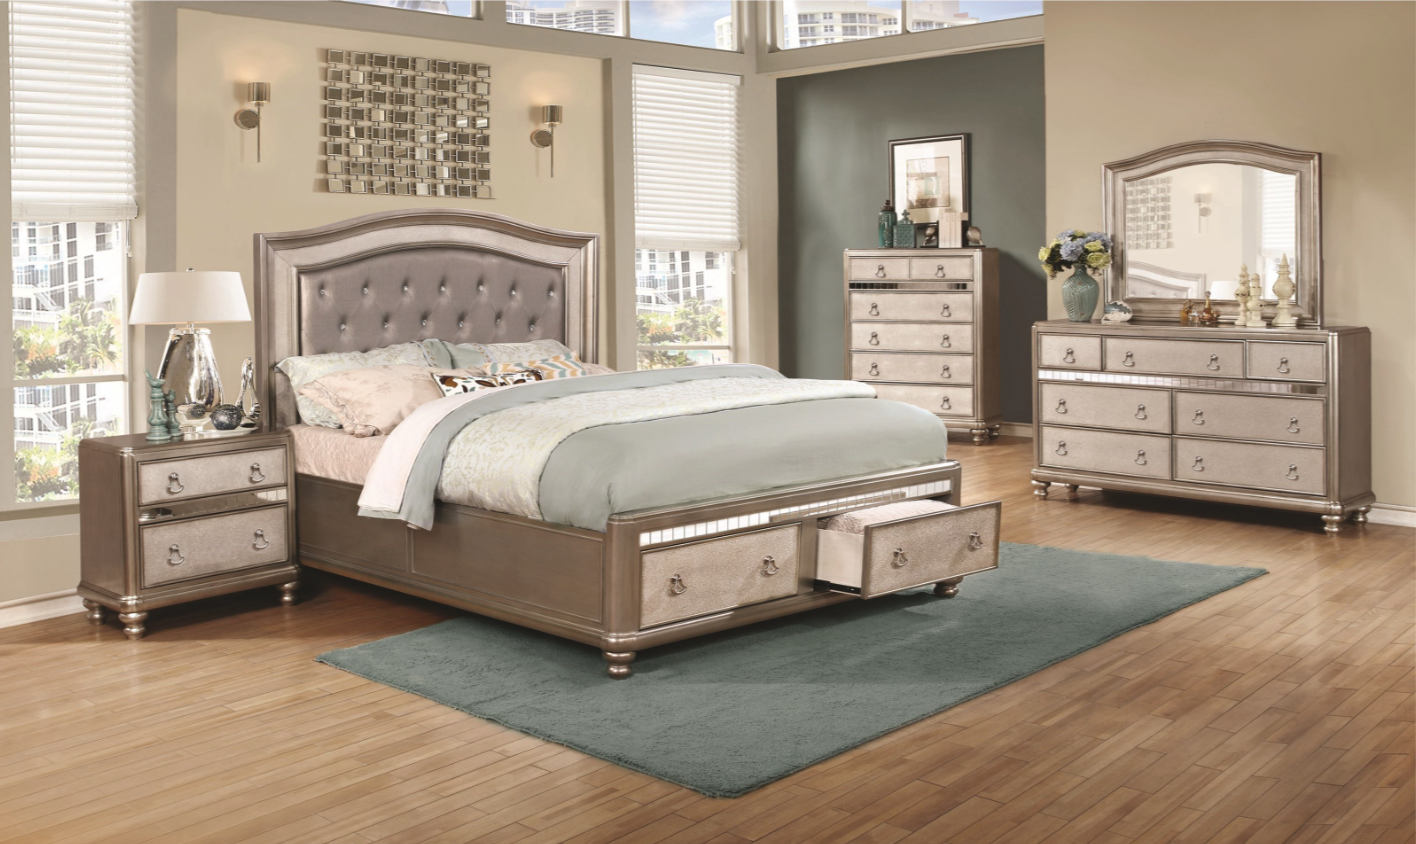 Bling Game 4pc Storage Bedroom Set